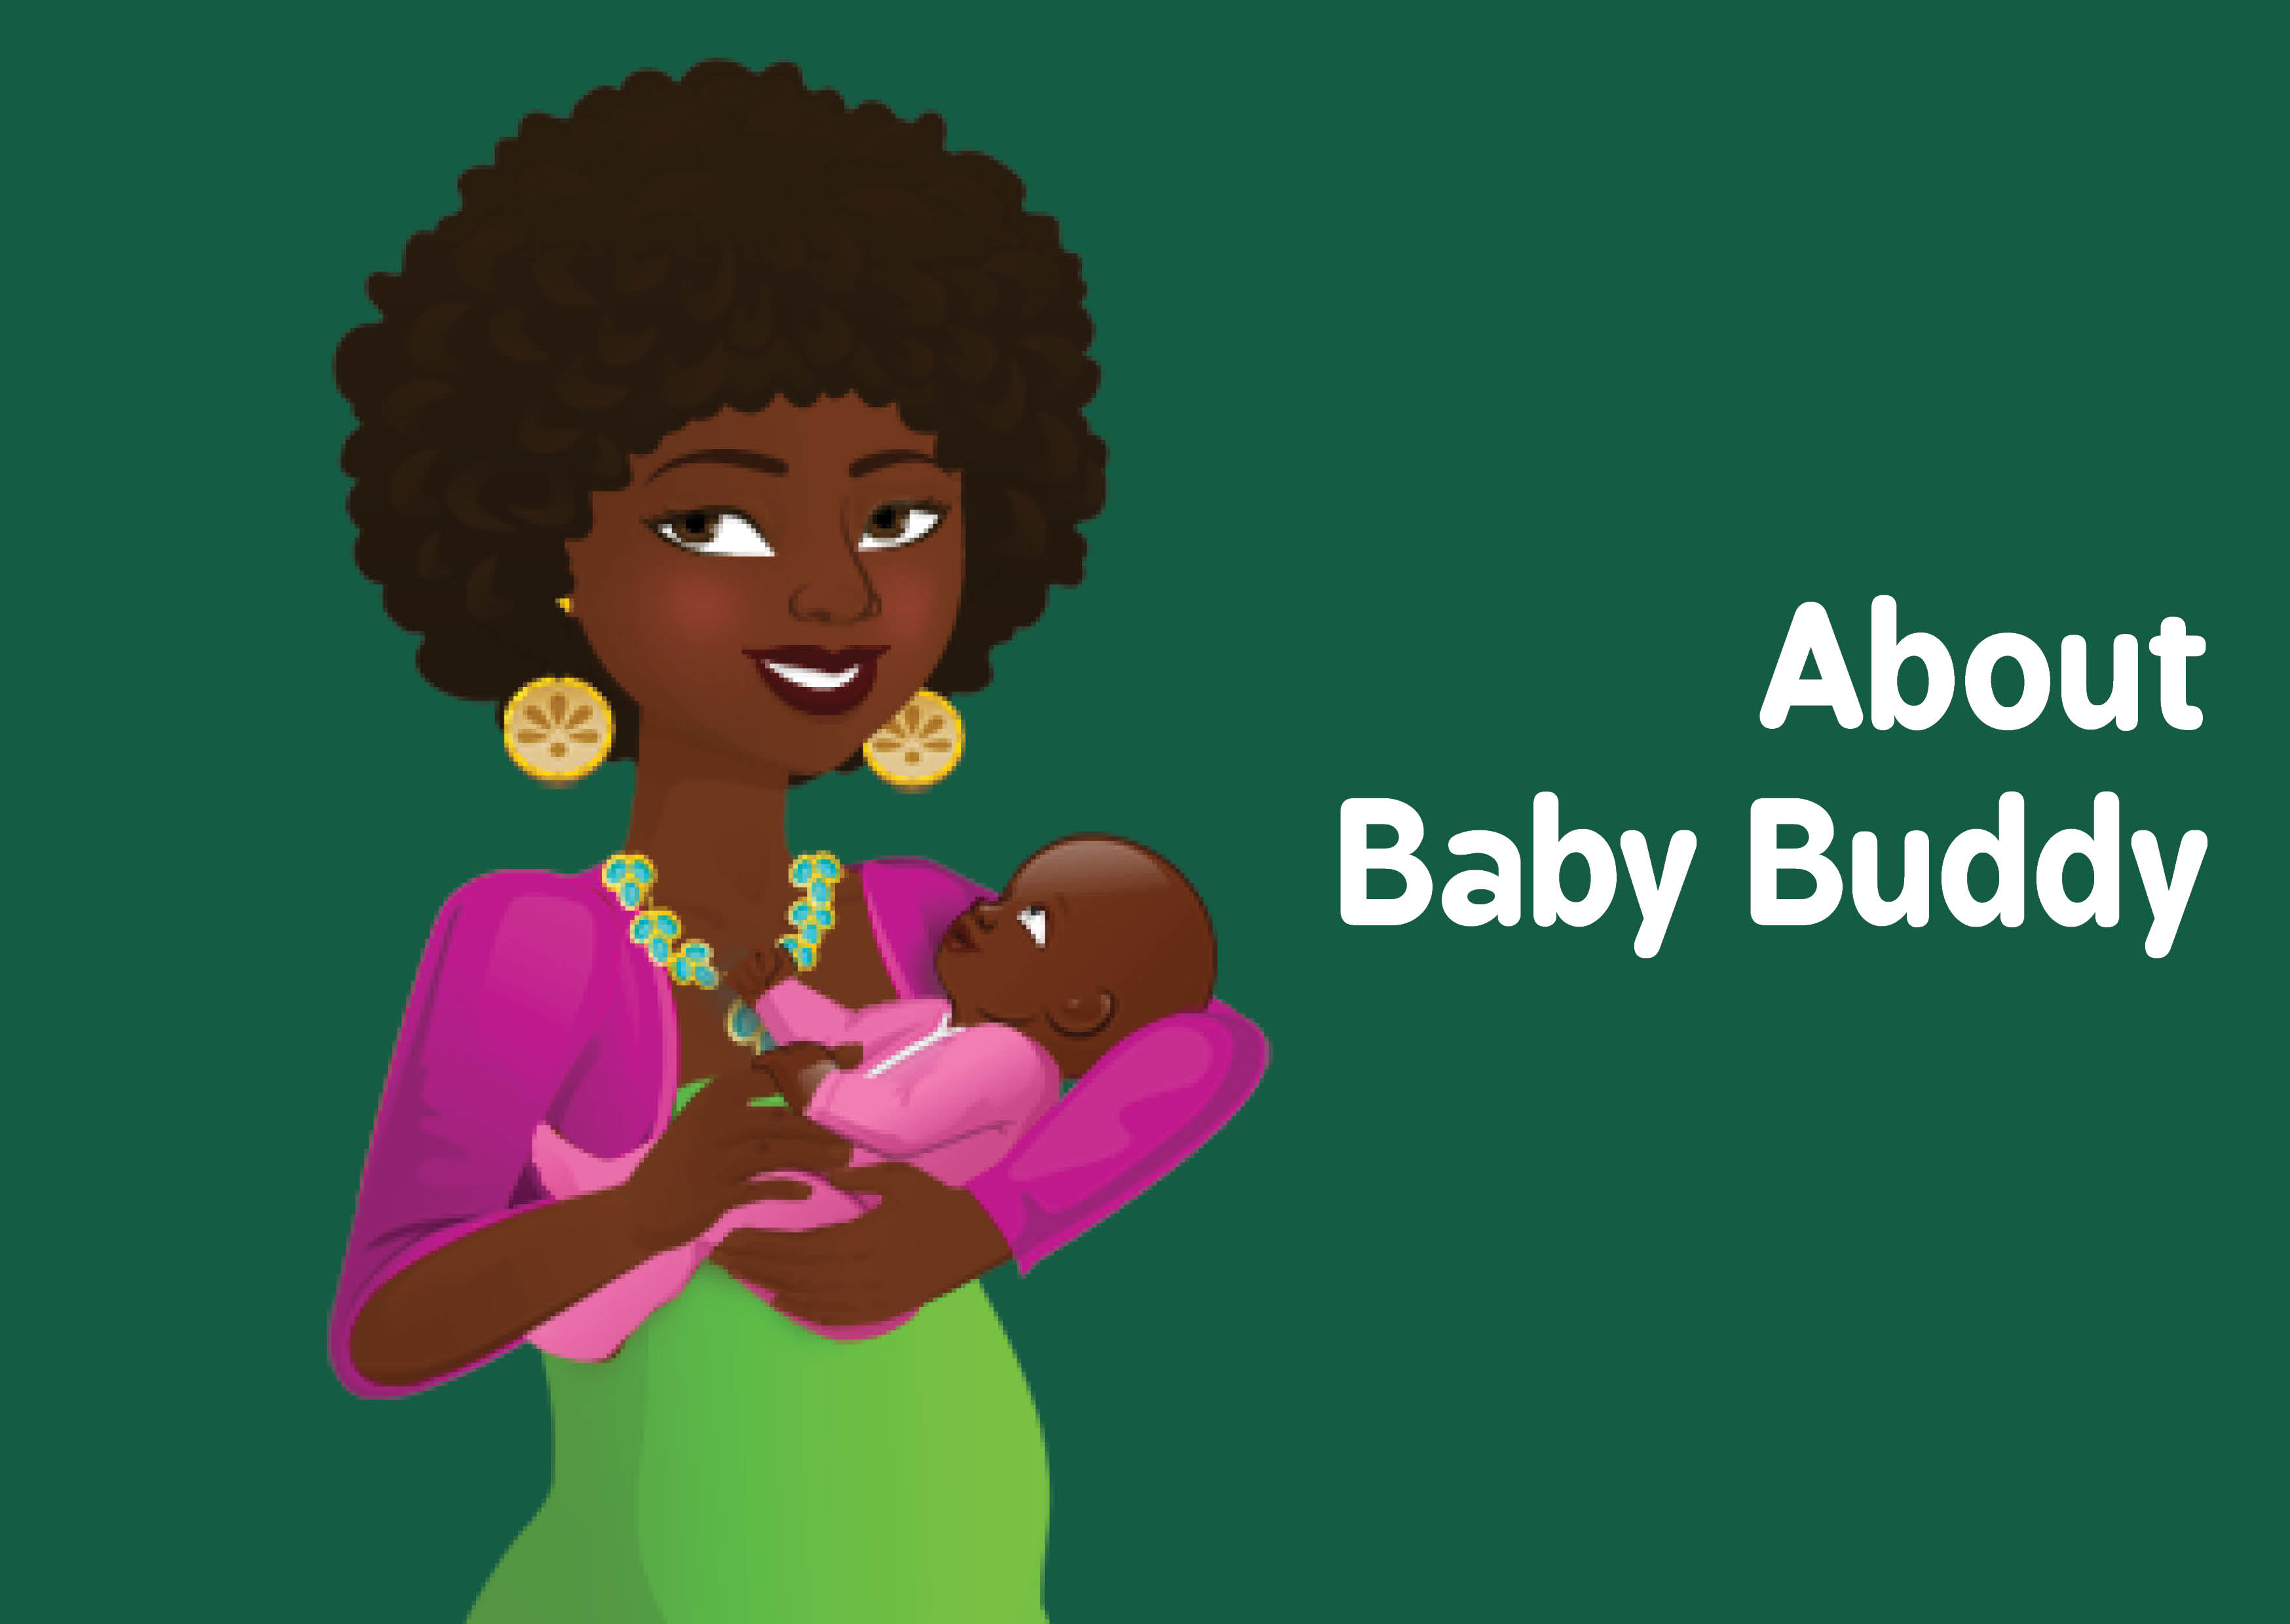 About Baby Buddy